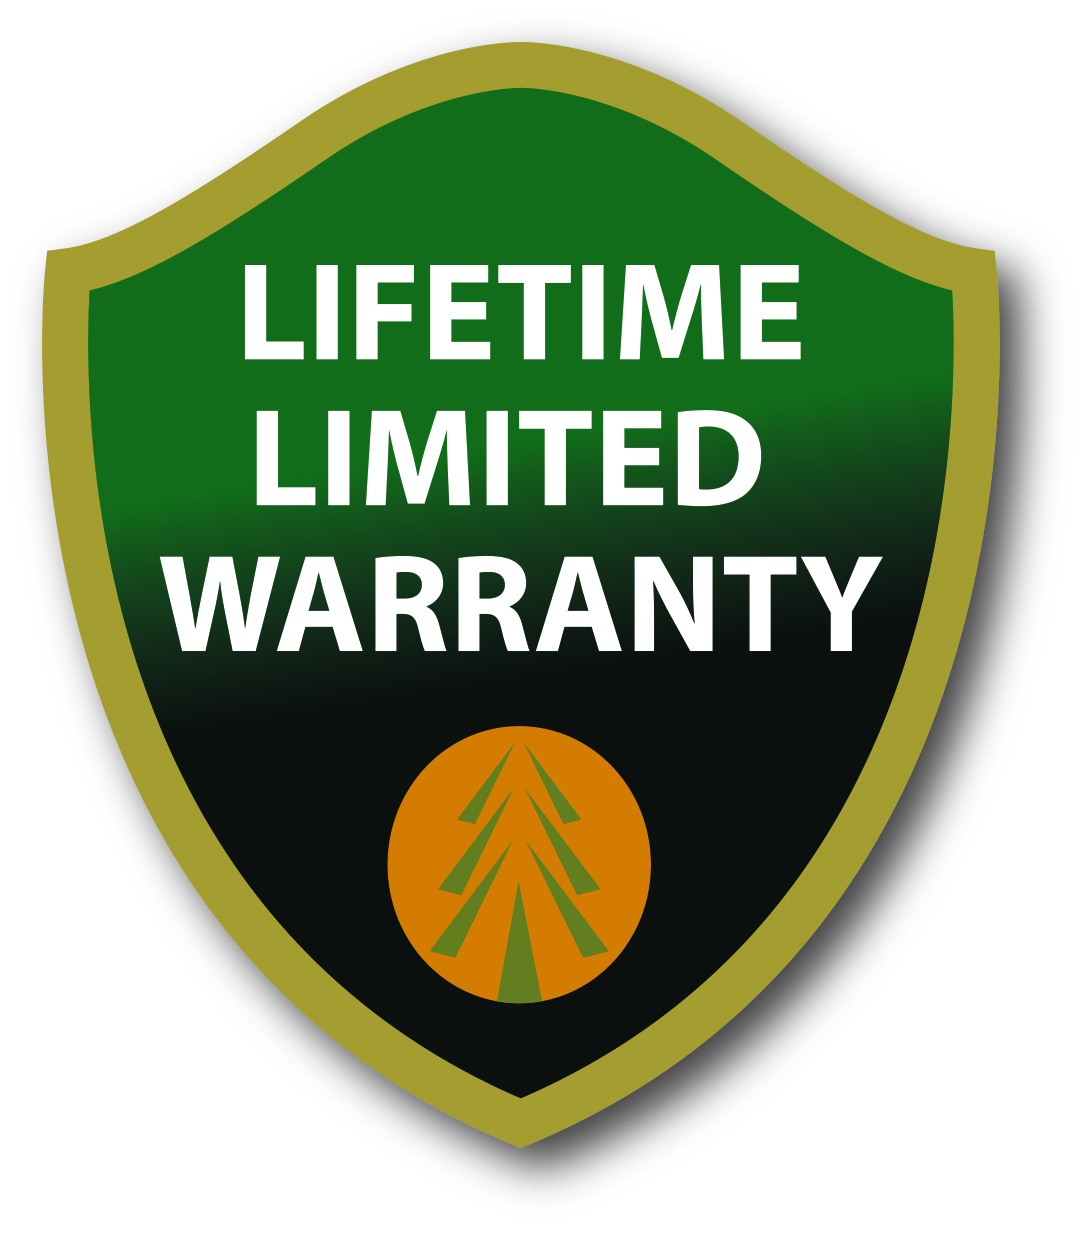 Lifetime Limited Warranty cmyk